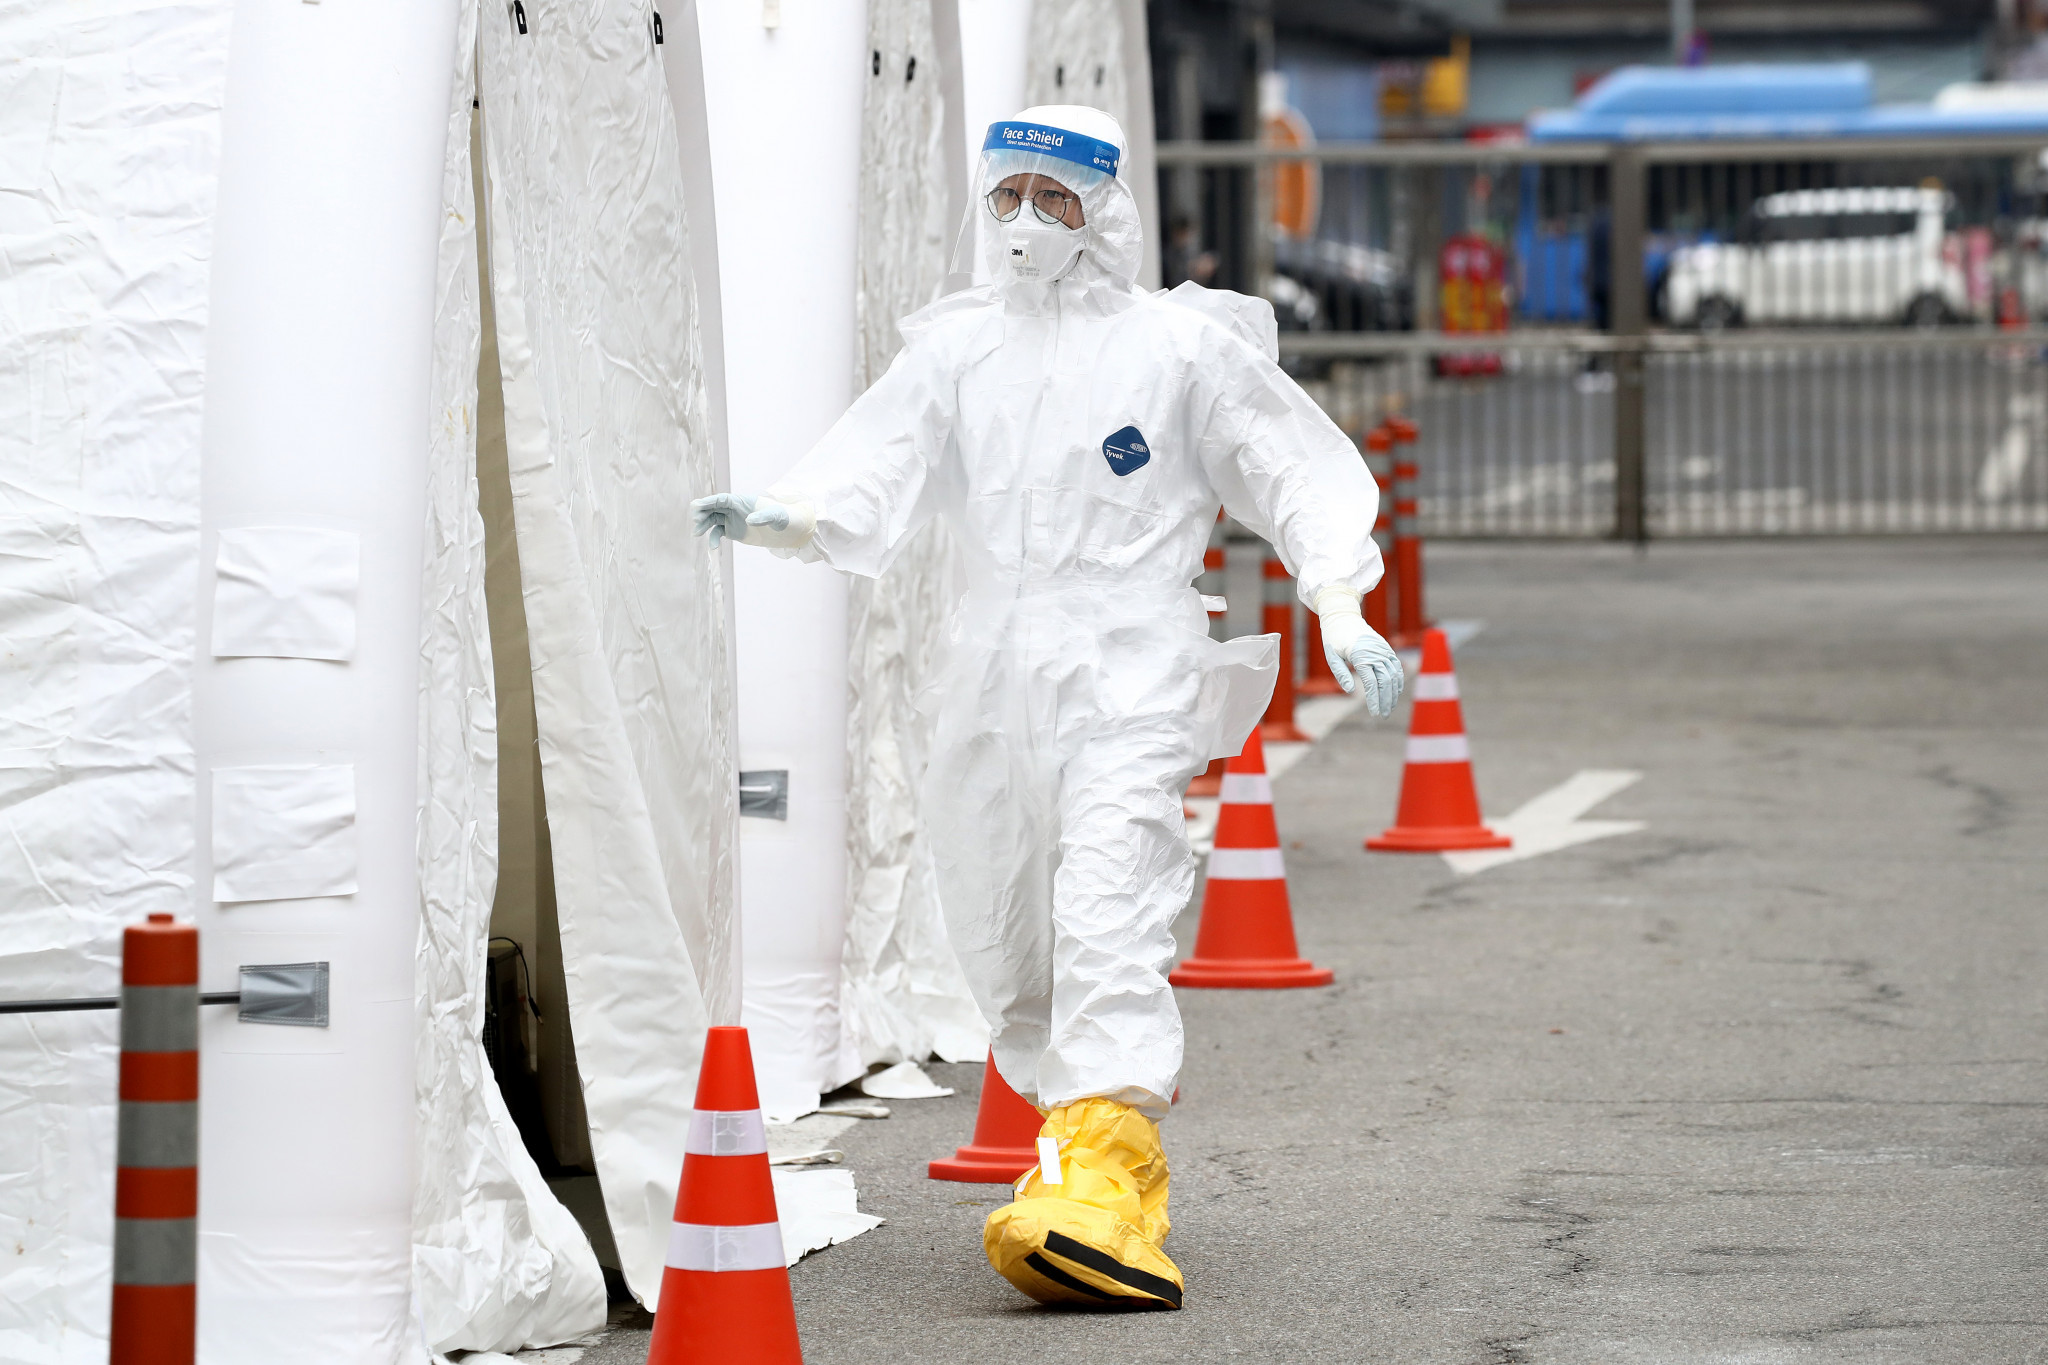 South Korea has been praised for its containment of COVID-19 through contact tracing and testing ©Getty Images